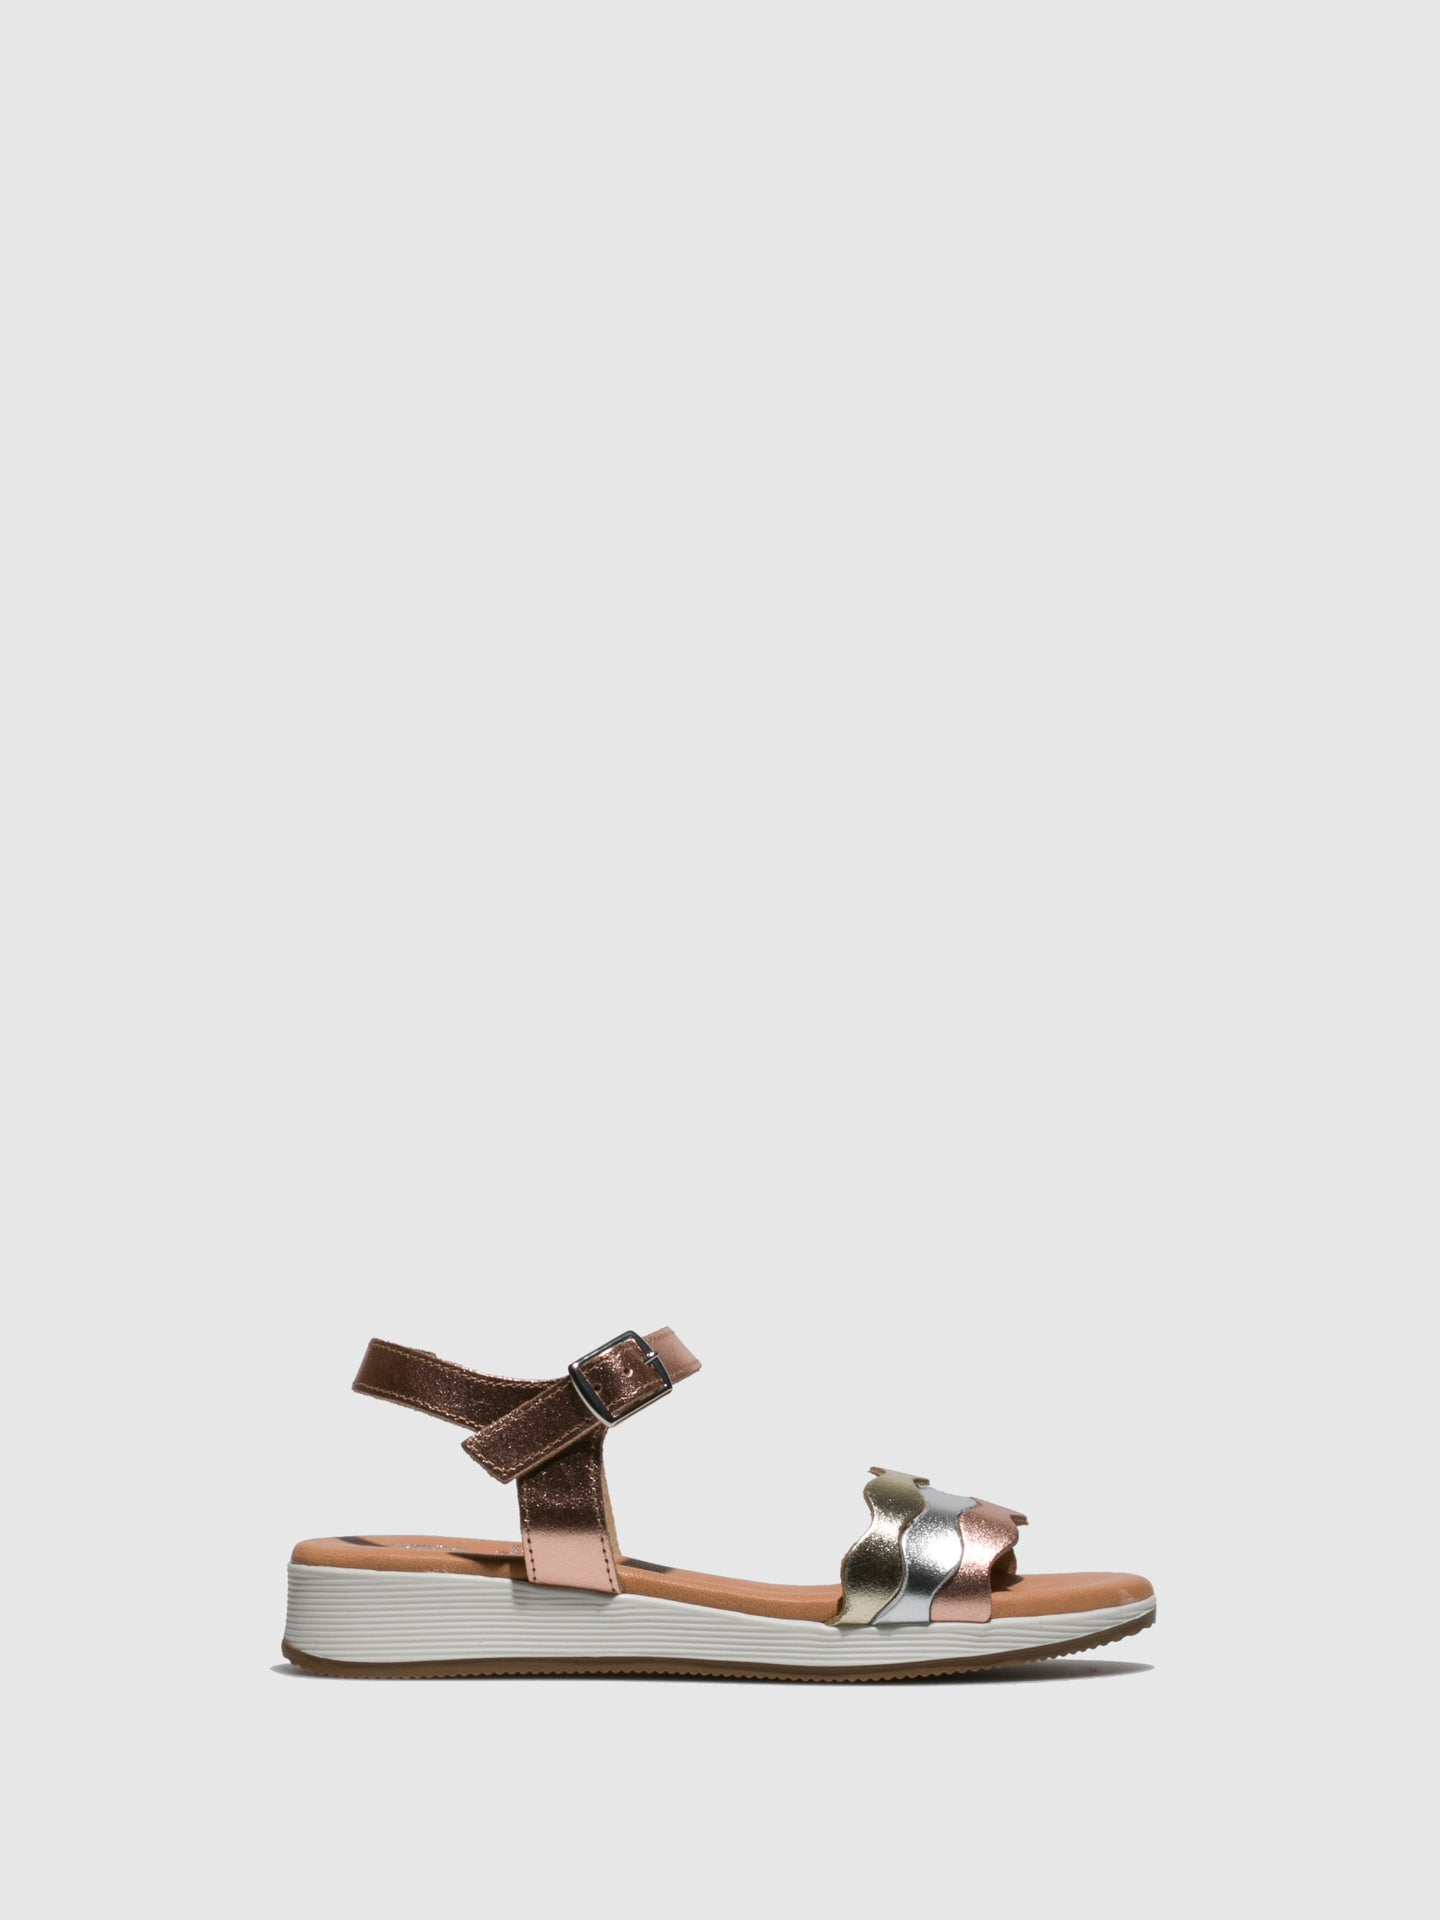 Marila Shoes RoseGold Buckle Sandals